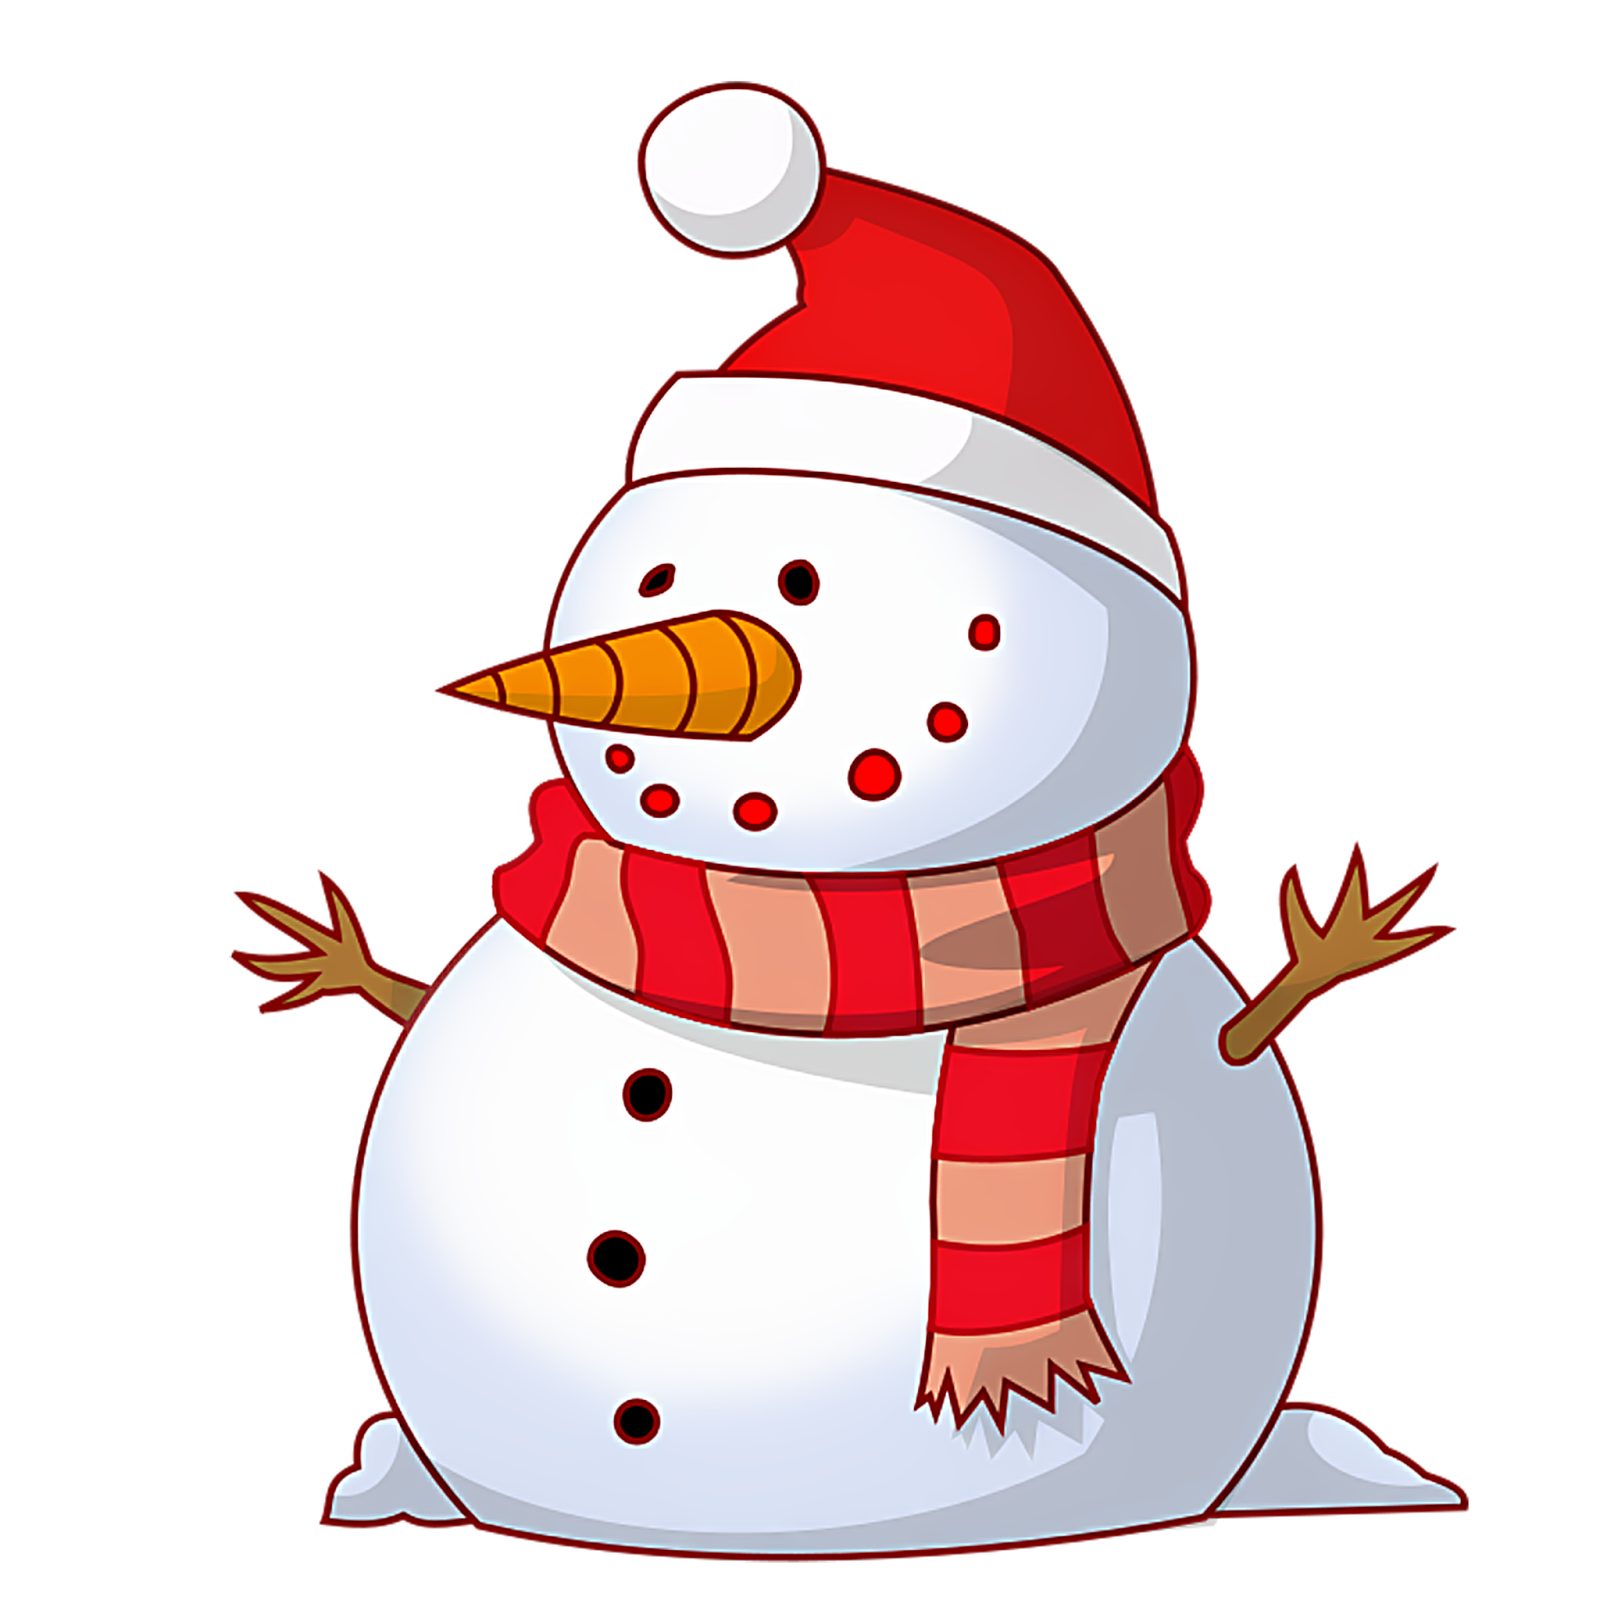 merry christmas clipart snowman